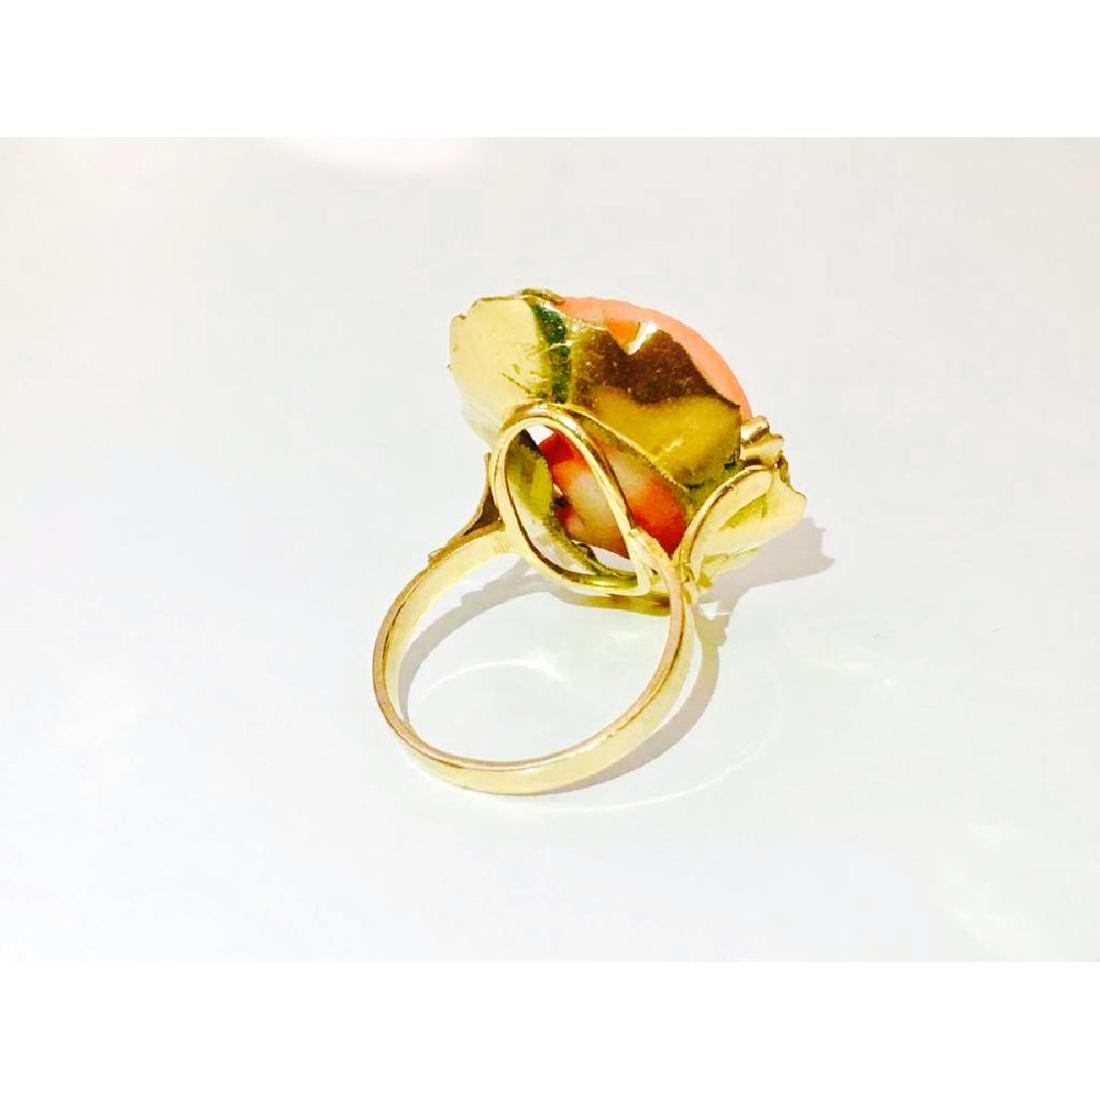 14K Yellow Gold and Coral Cameo Ring - 4